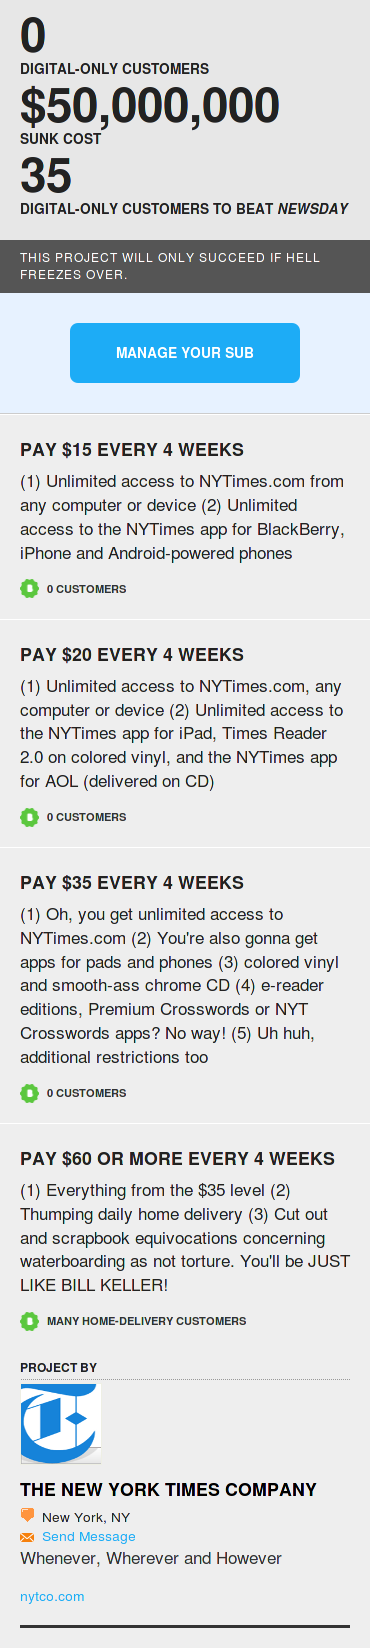 NYT Paywall as Kickstarter Levels